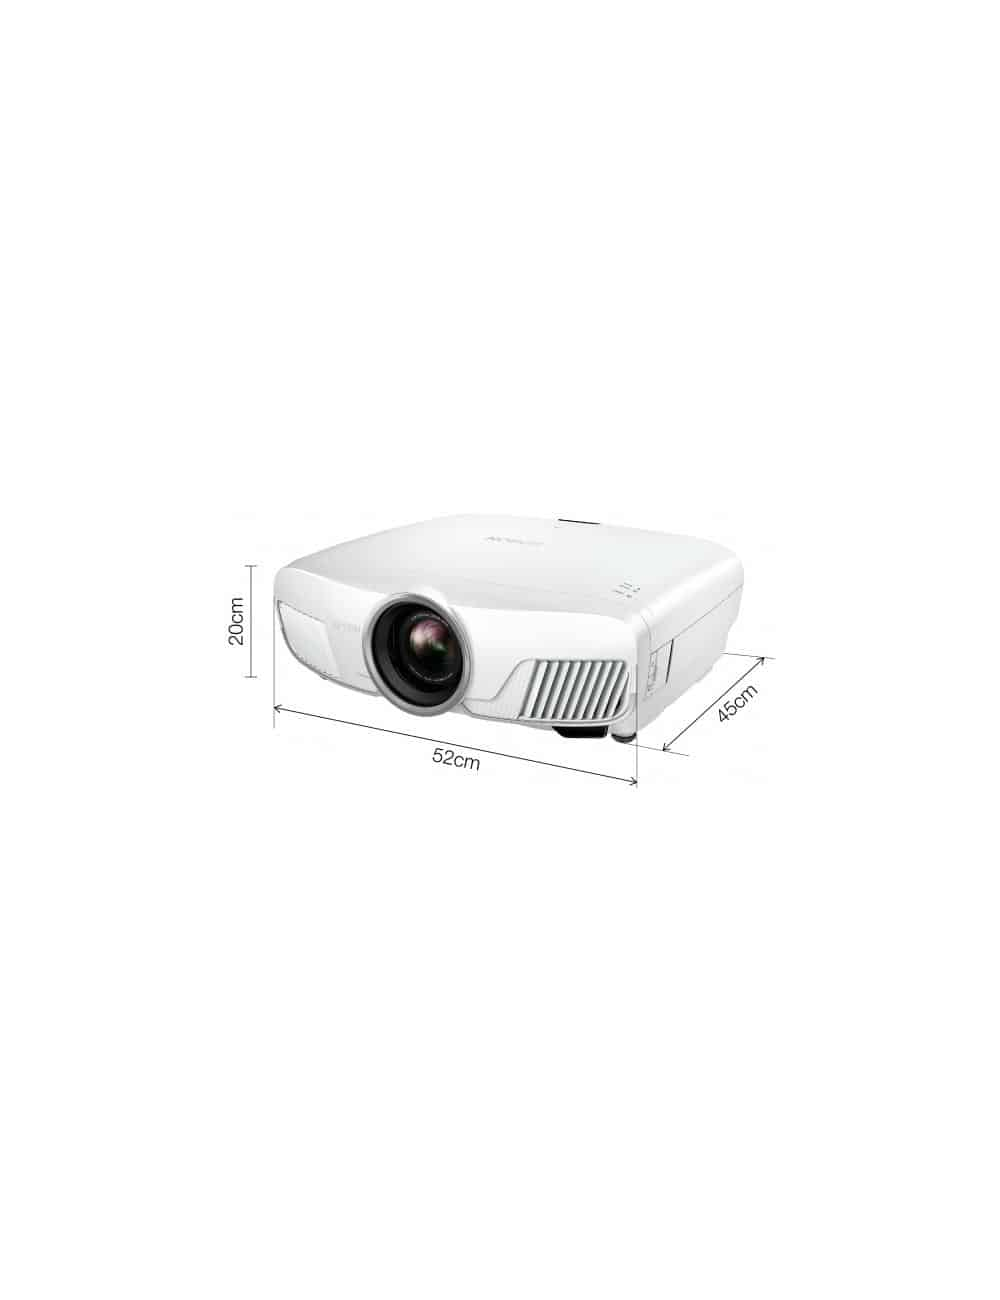 Proiettore UHD HDR wireless per Home Cinema, Epson EH-TW9400W, finitura white, misure